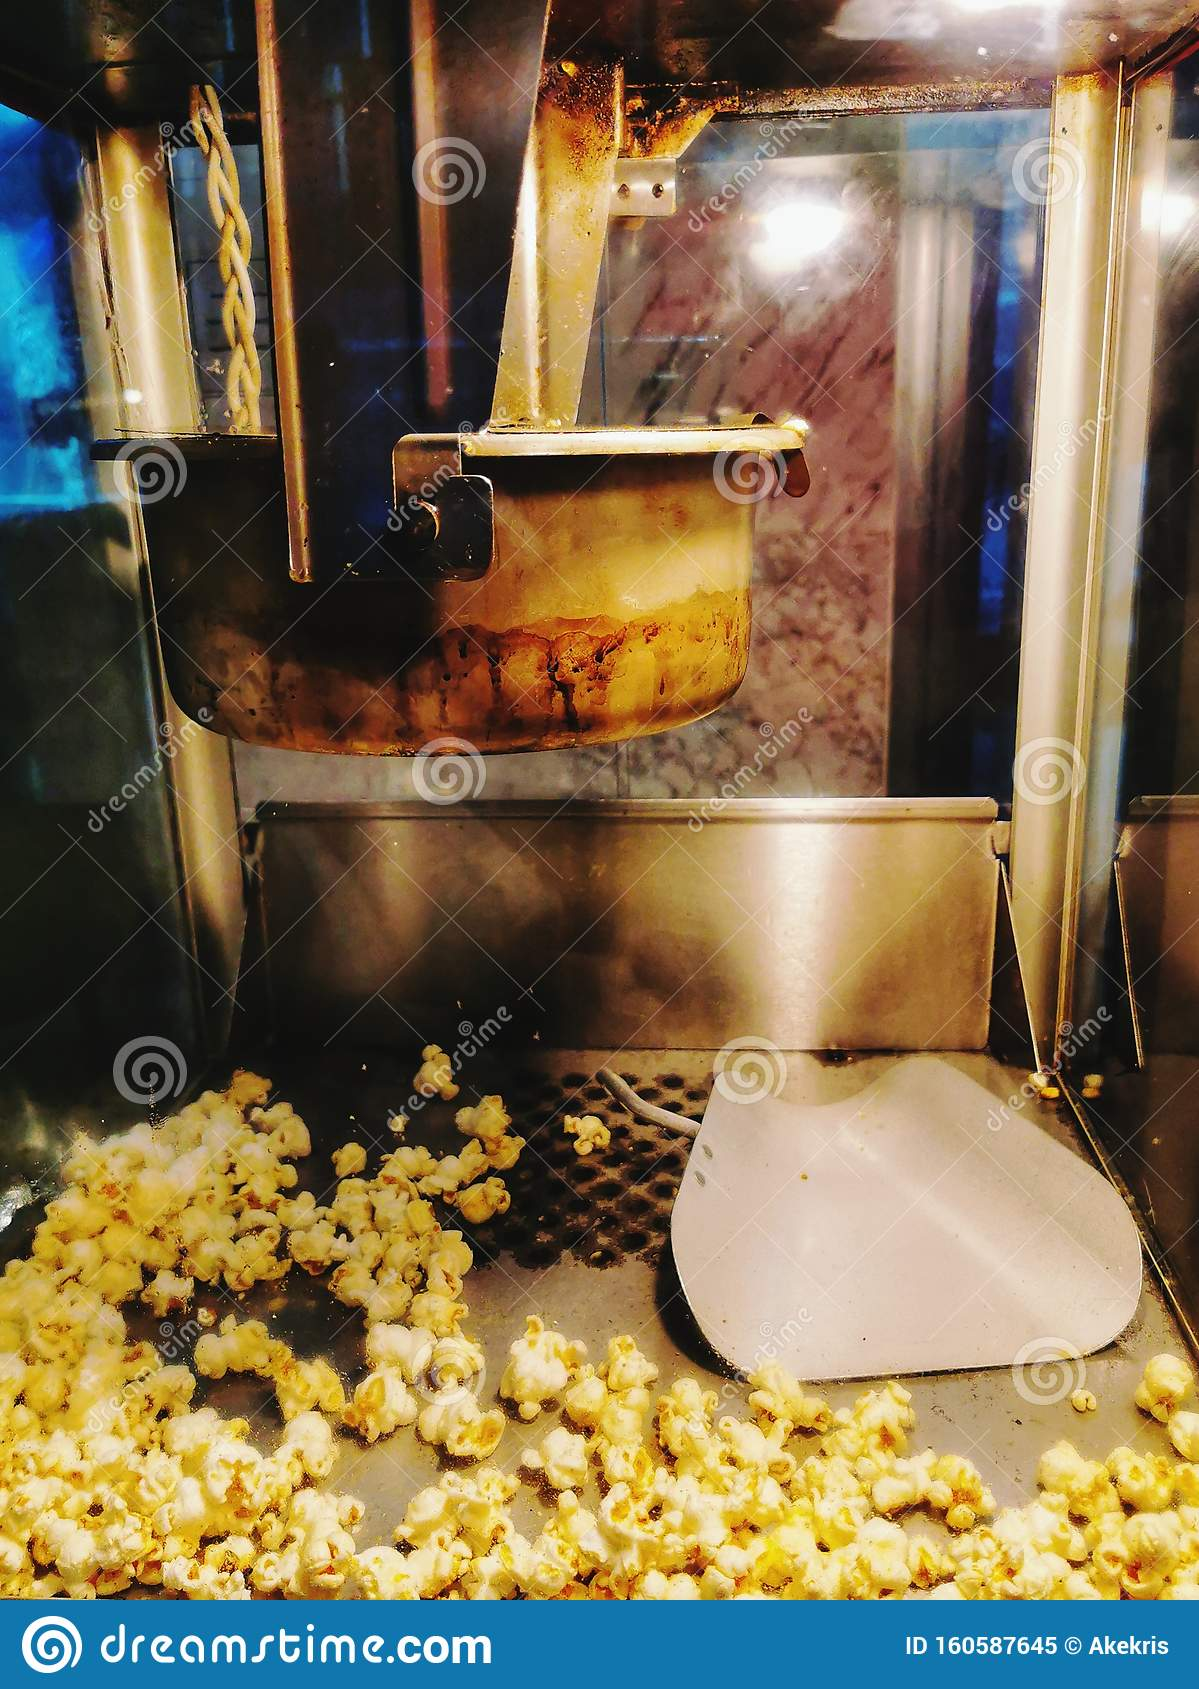 The Popcorn Maker Machine Movie Theater Stock Image Image Of Machine Maker 160587645